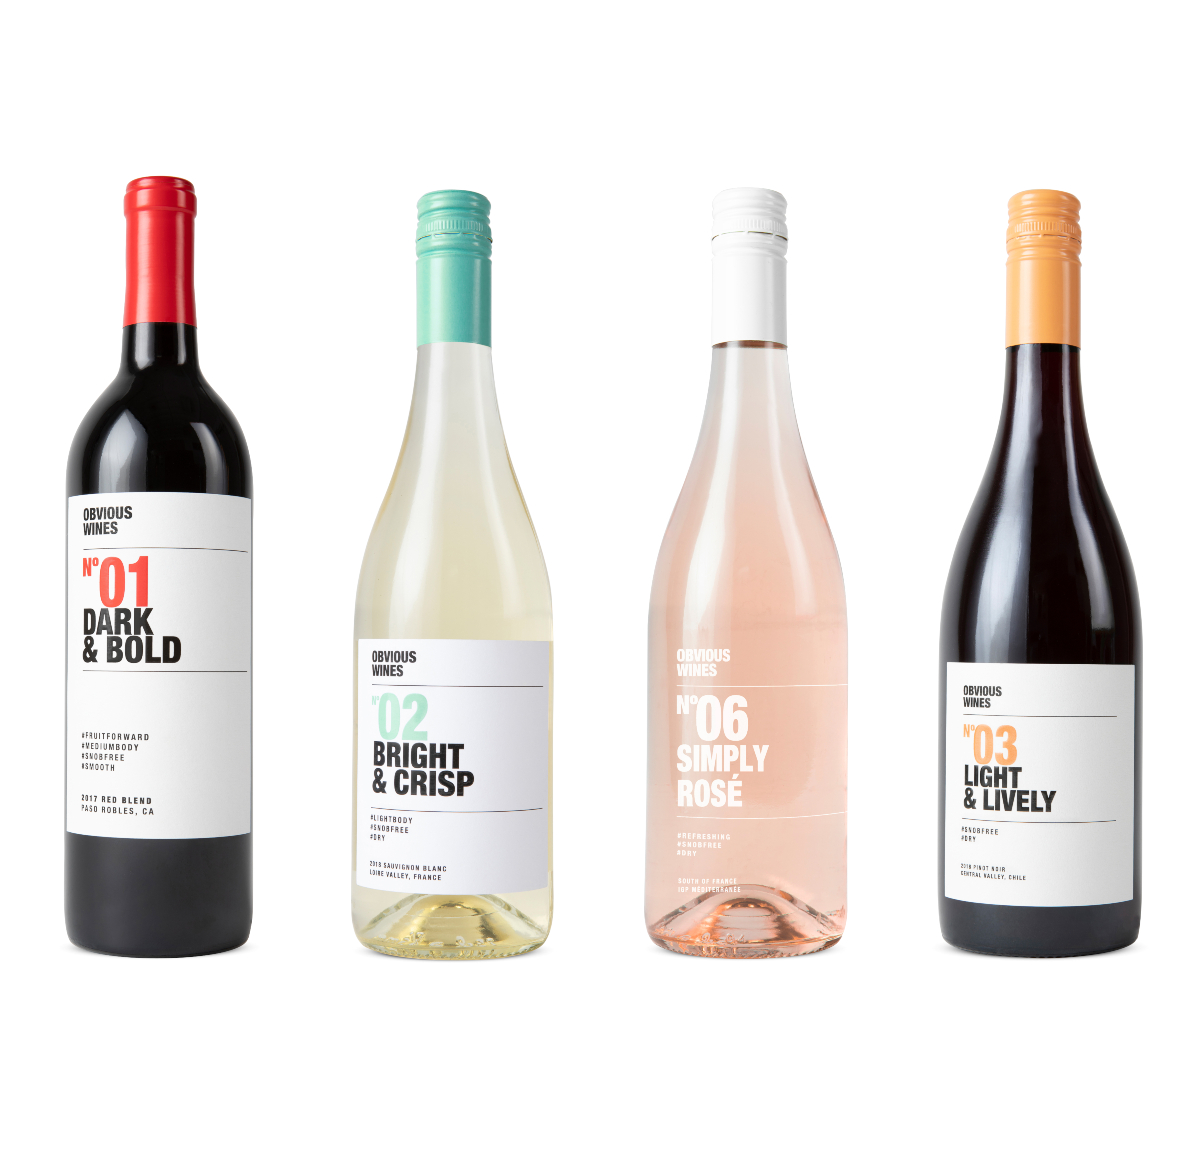 Various bottles of wine from Obvious Wines